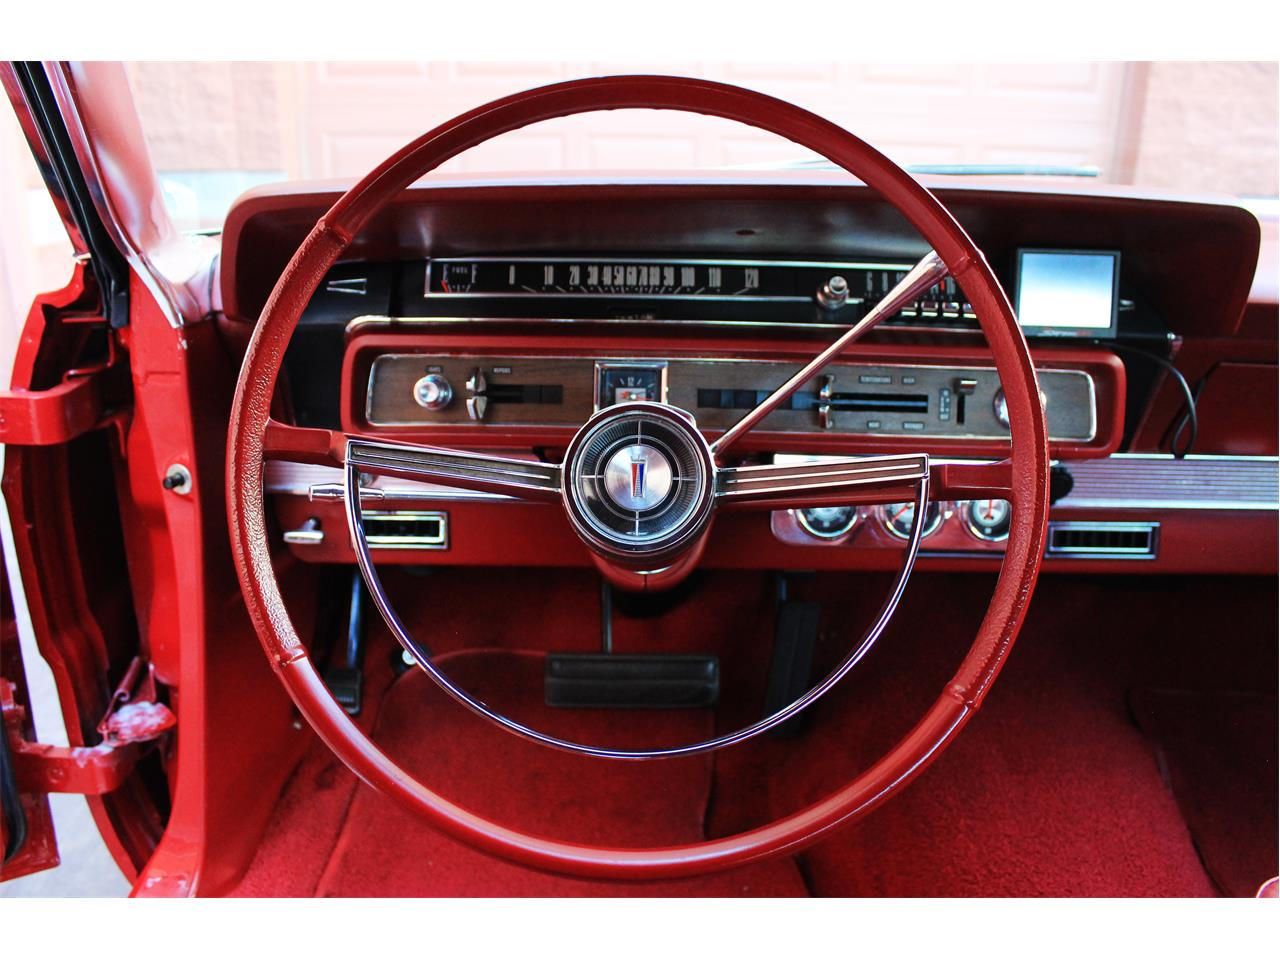 1966 Ford Galaxie 500 for sale in Scottsdale, AZ – photo 7